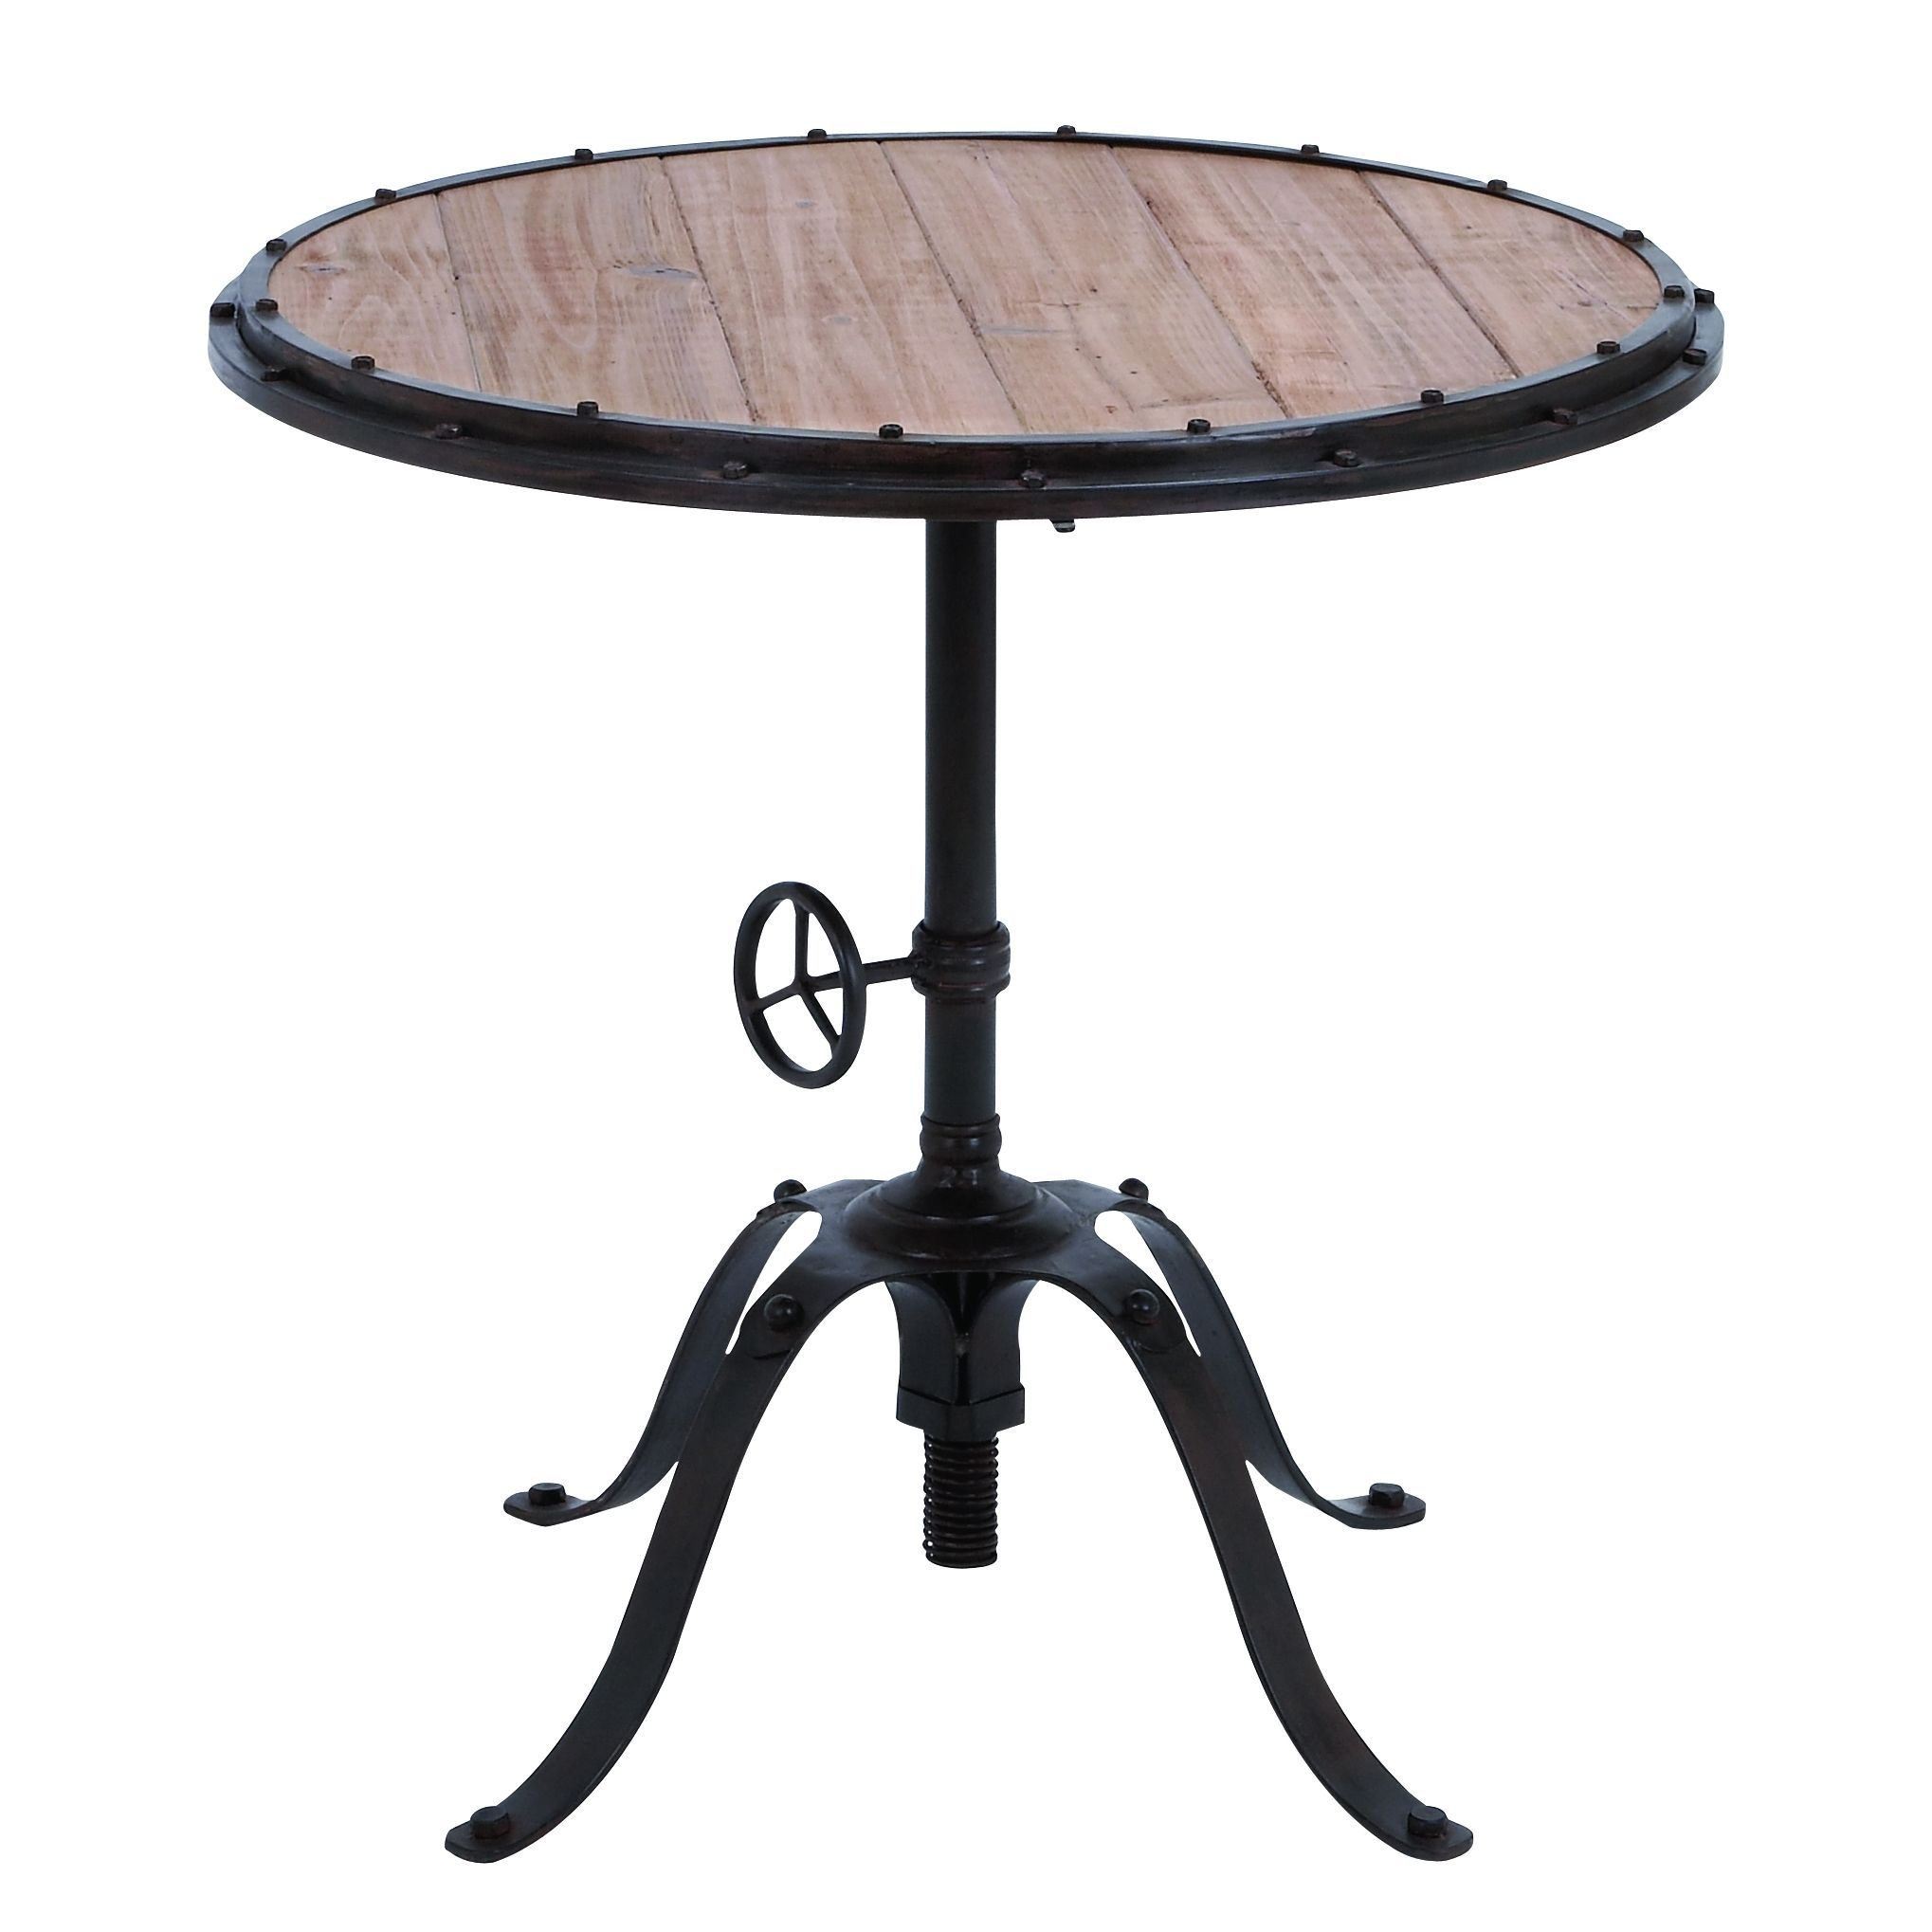 accent collection black distressed metal and wood inch round table studio small patio dining old lighting light shower head gray white coffee solid folding kitchen chairs outdoor